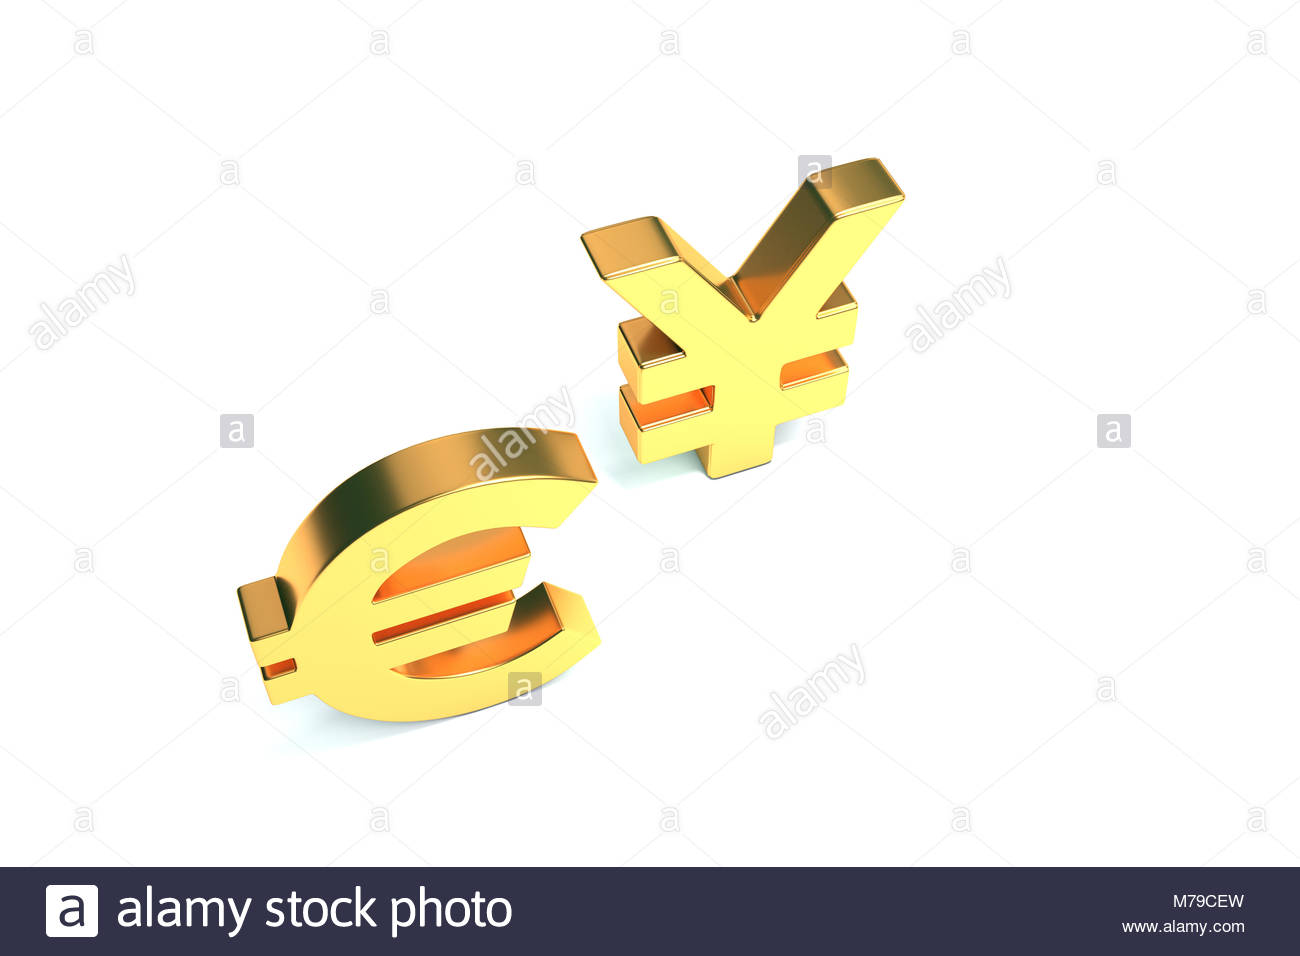 Euro And Yen Sign On White With Clipping Path - Stock Image